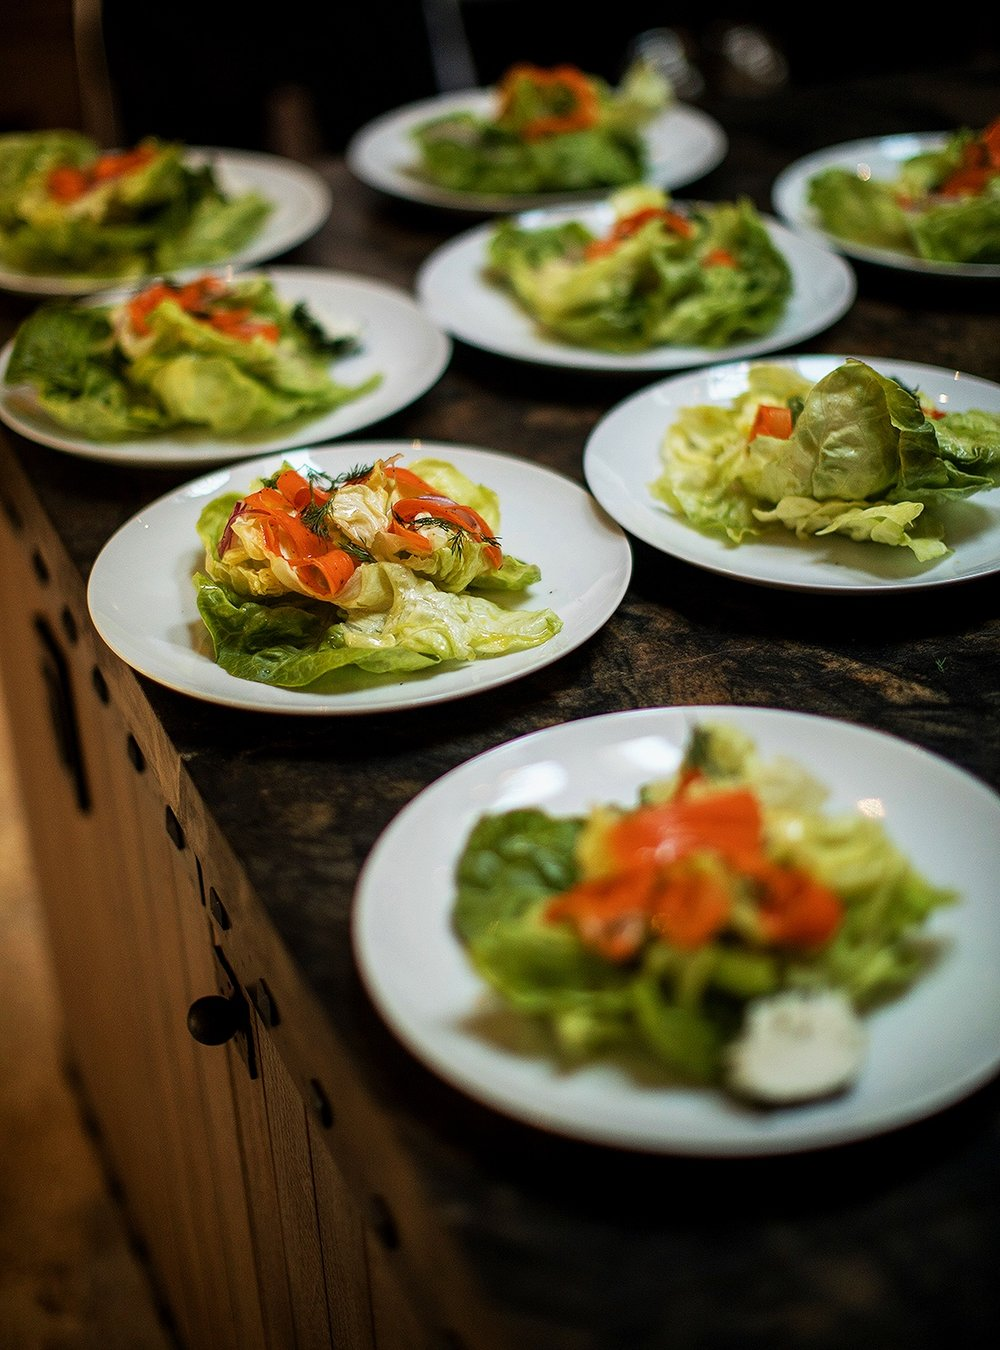 Bibb lettuce salad with carrot, red onion, herb cheese, and dill